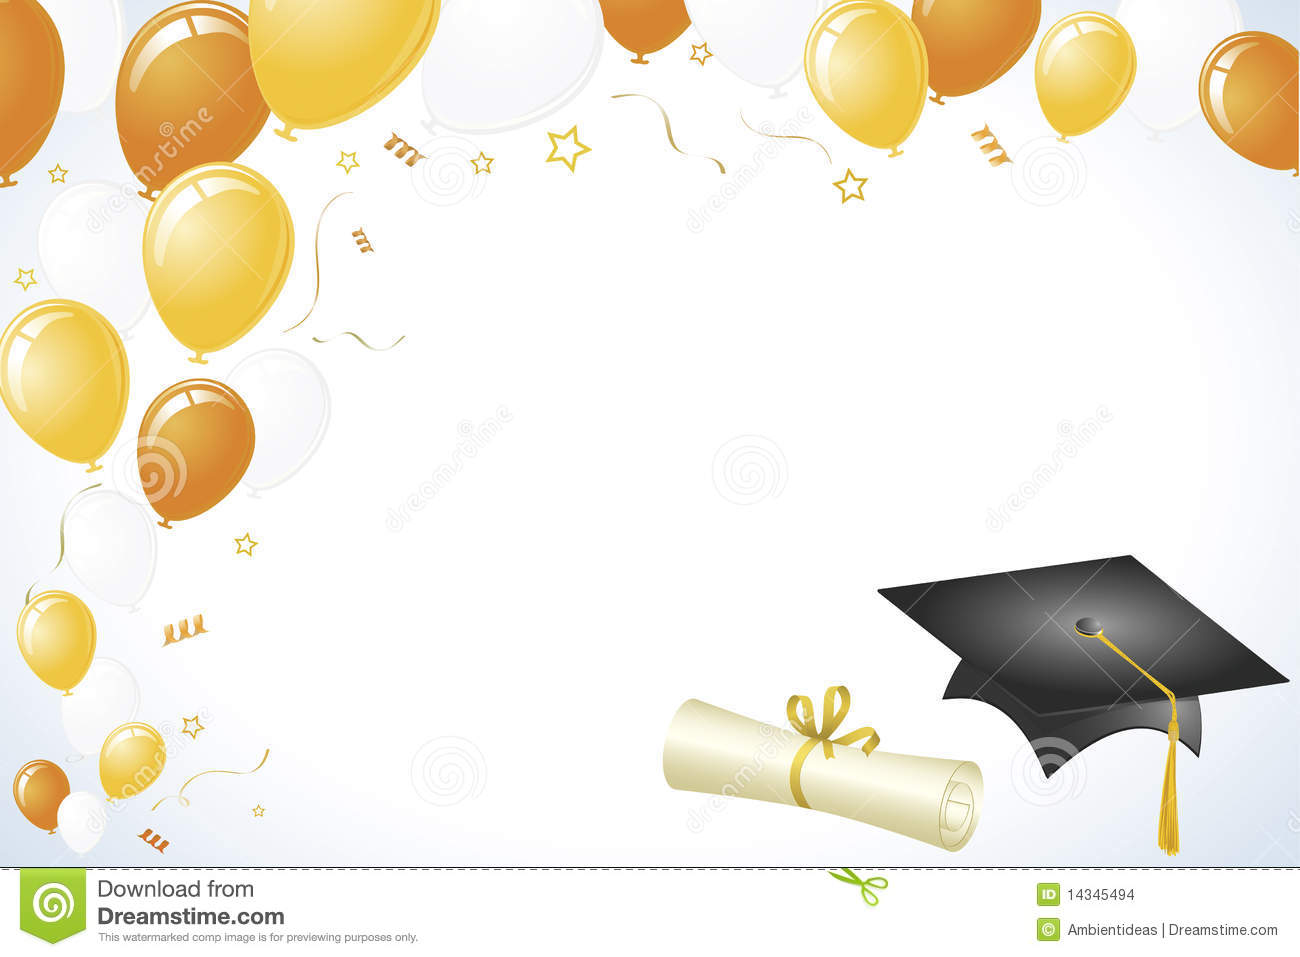 Blue and Gold Graduation Balloons